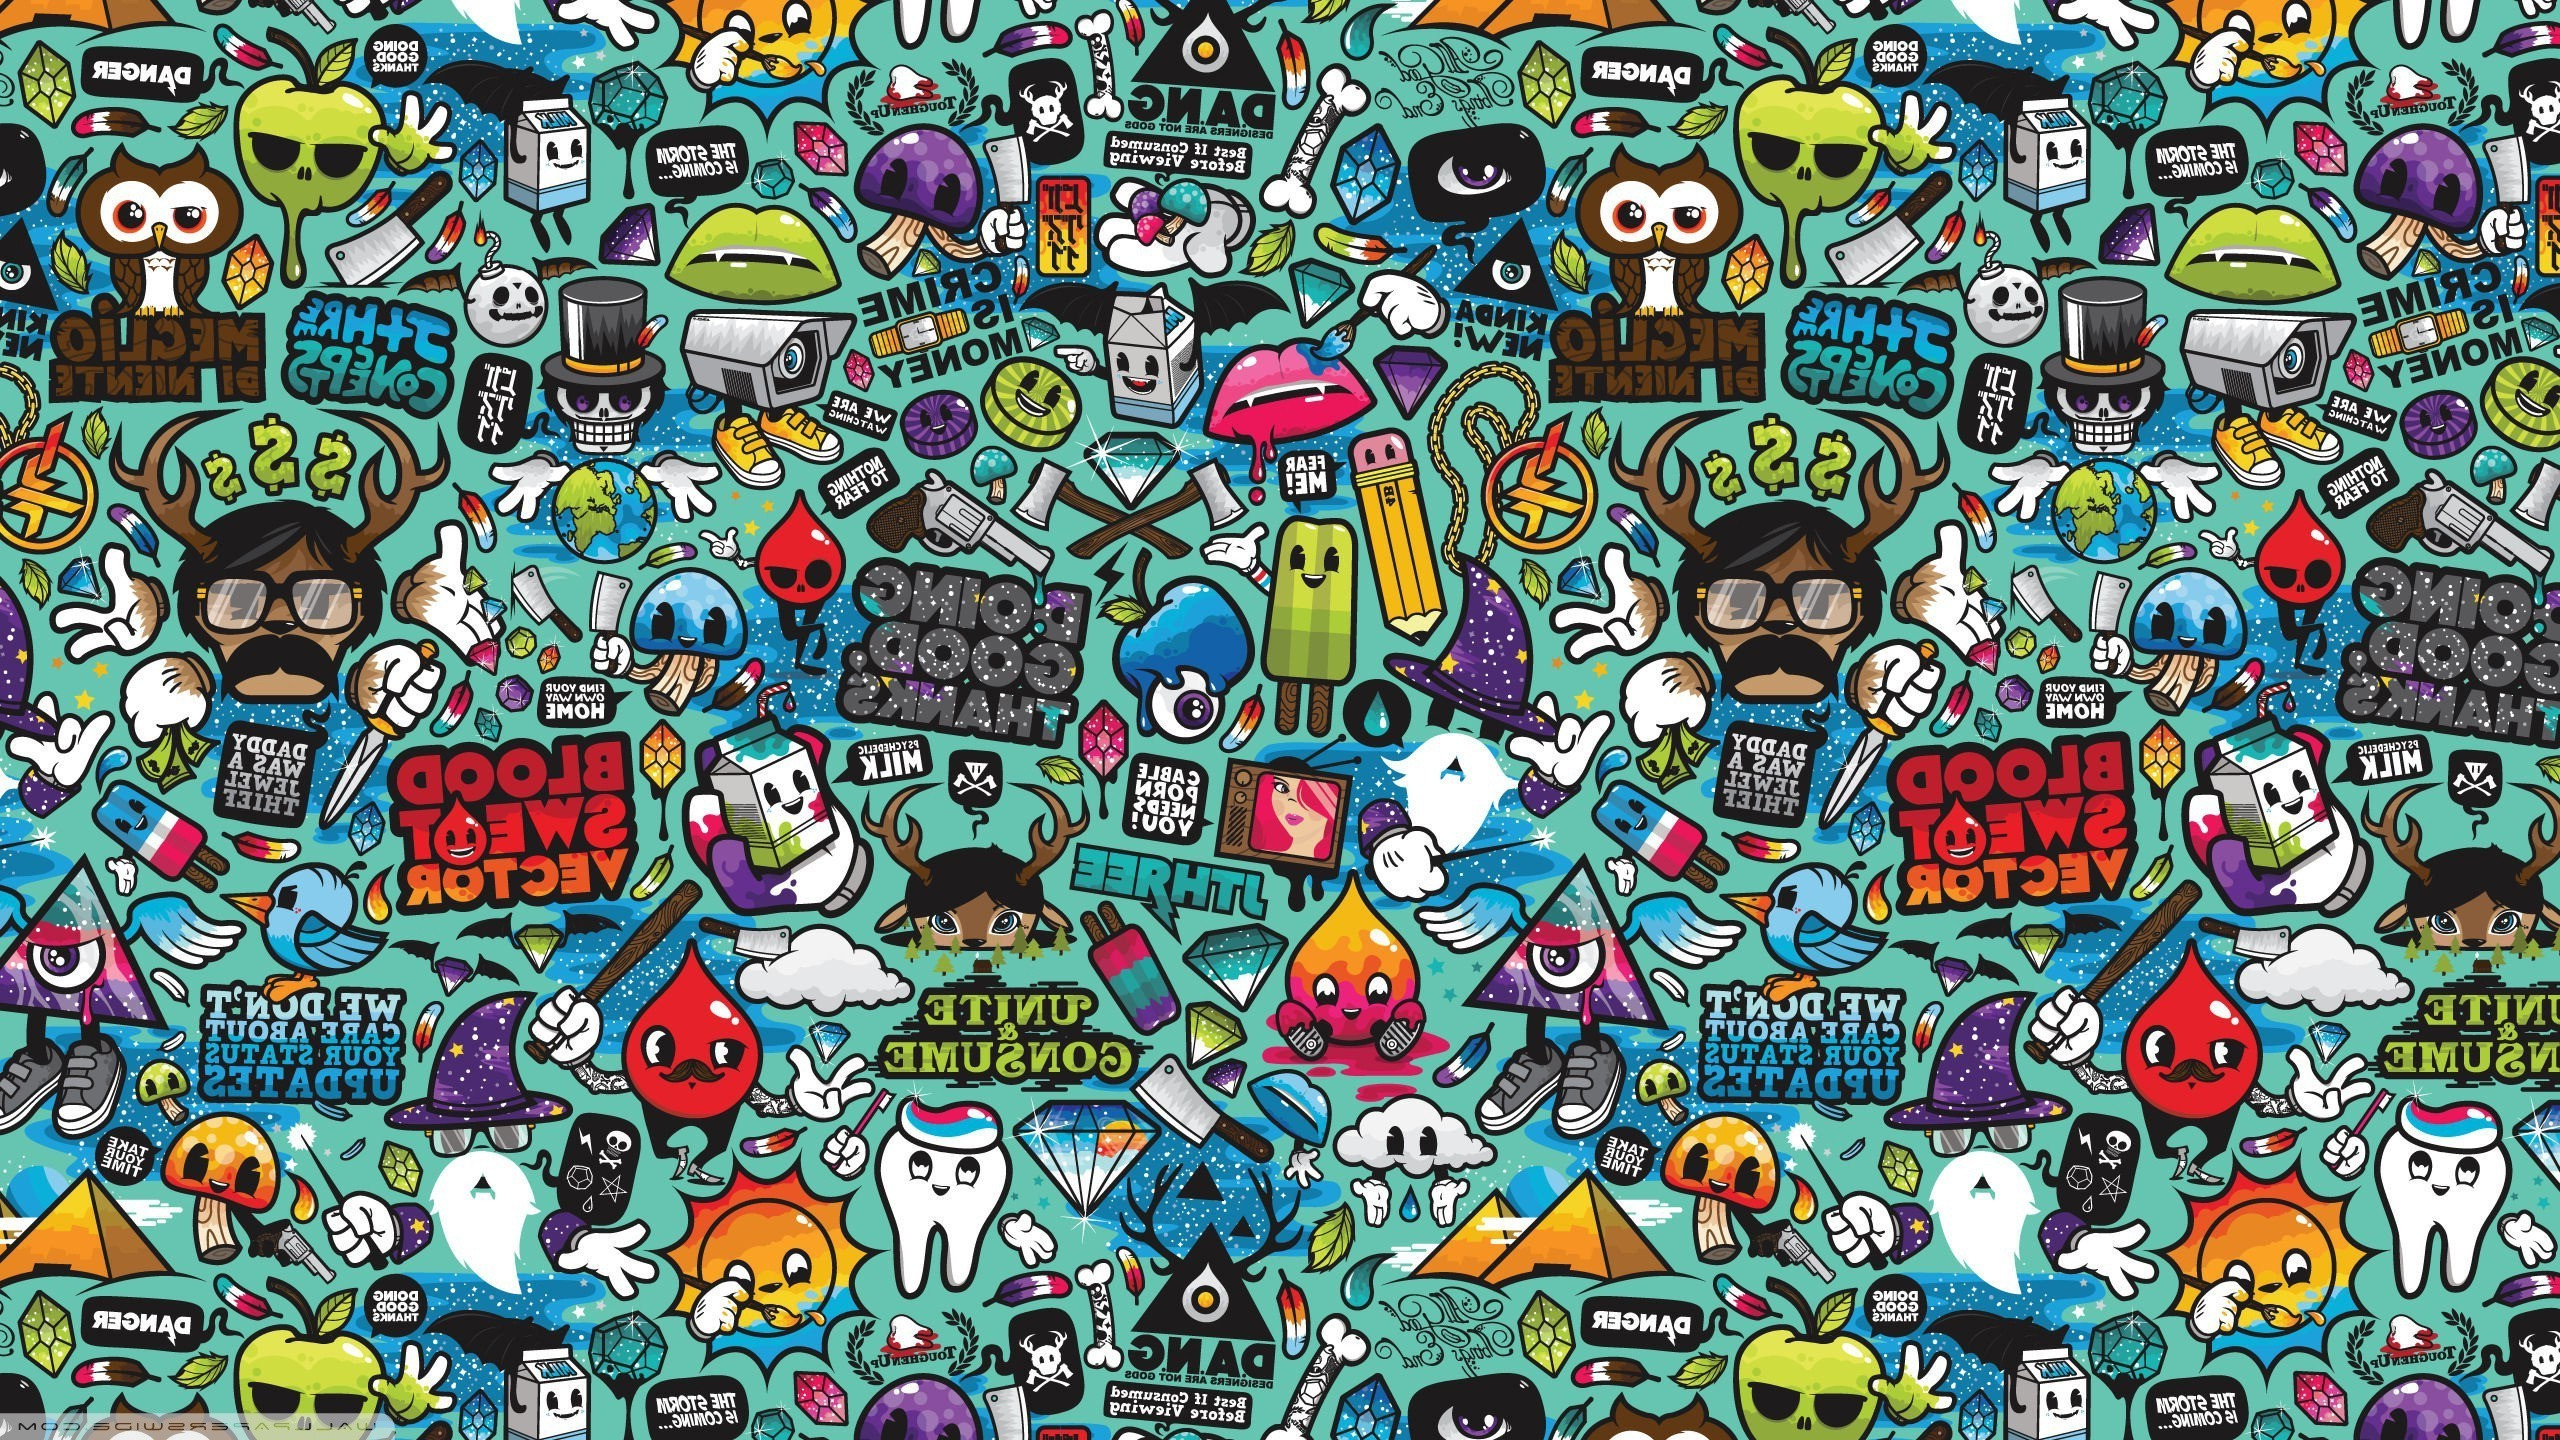 abstract Pop Art Anime Jared Nickerson Artwork Wallpapers HD 2560x1440